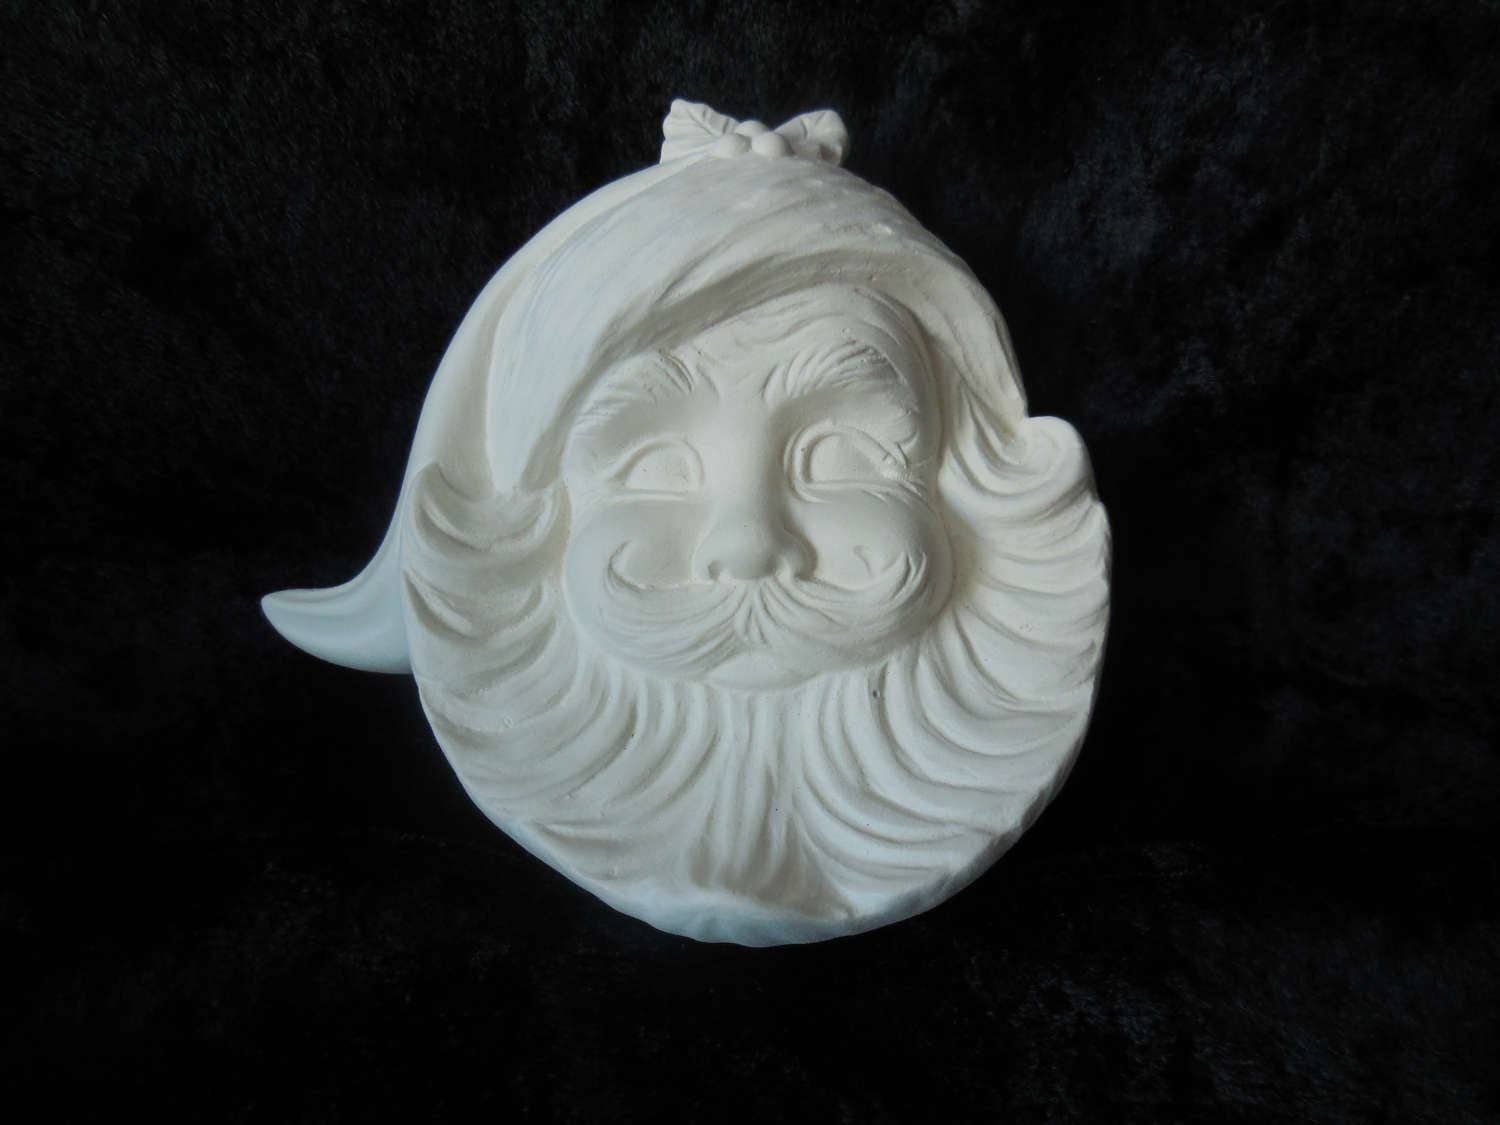 Santa face ornaments -  Santa Face Ornament Silent Sale Sold By Beckeandbailey